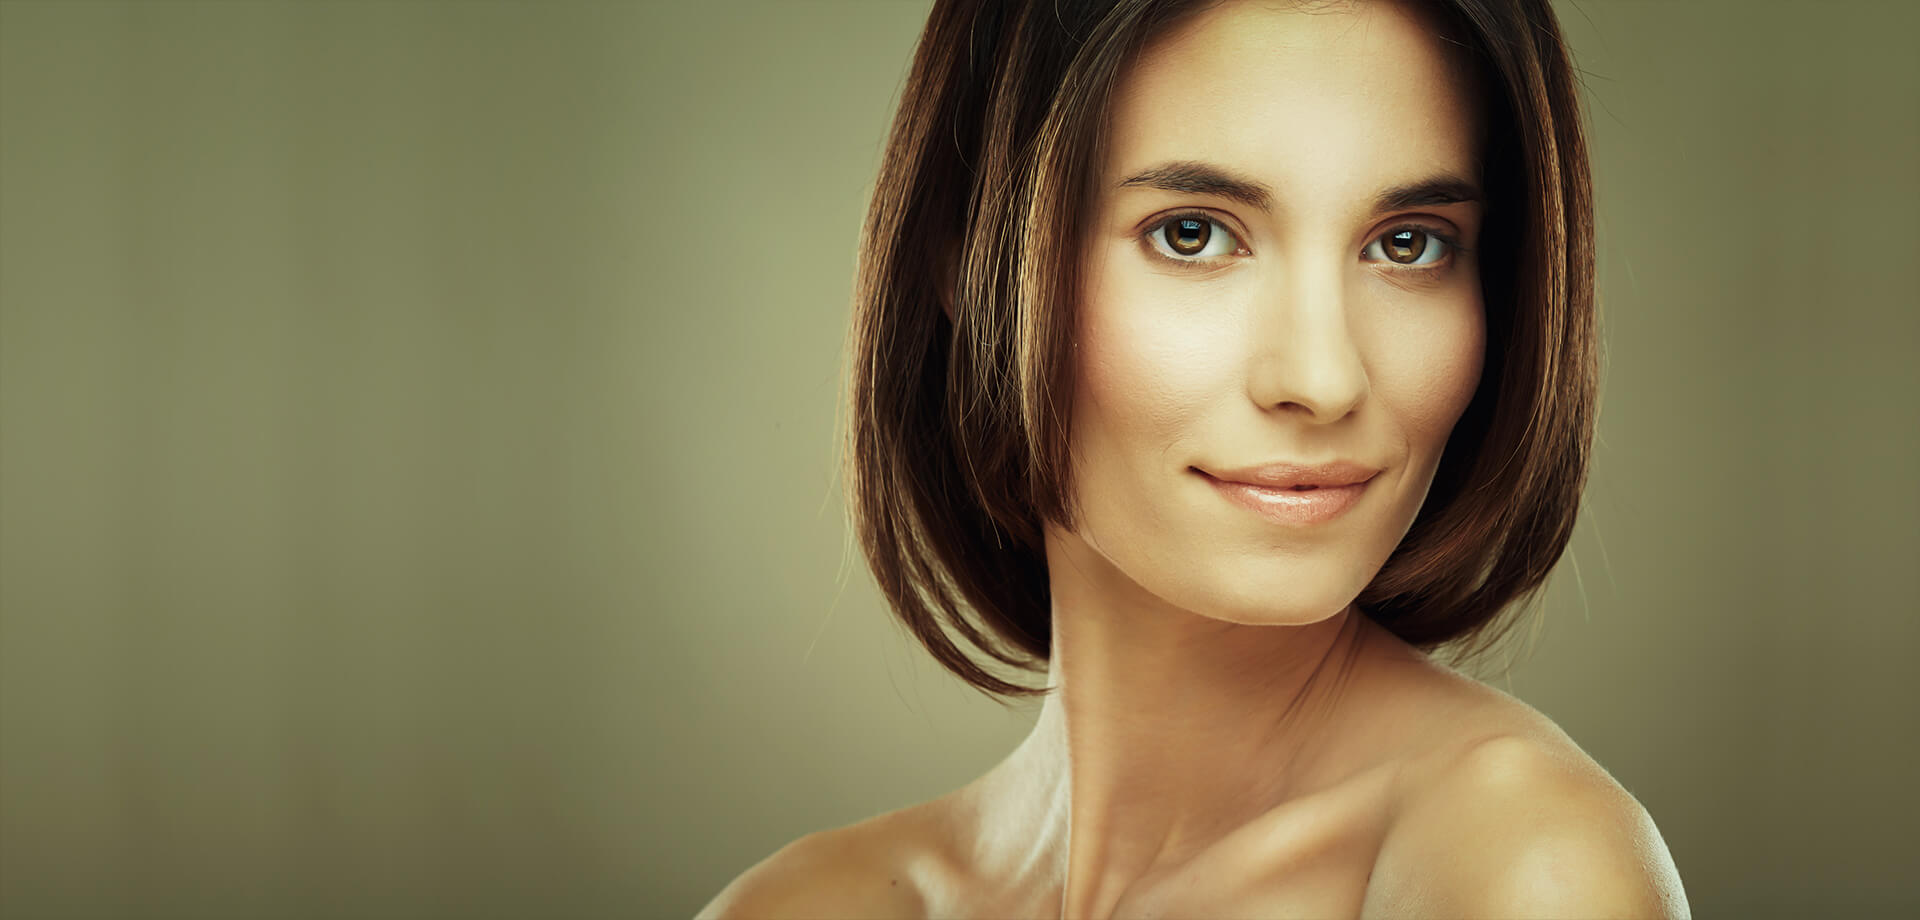 Juvederm Voluma Chicago